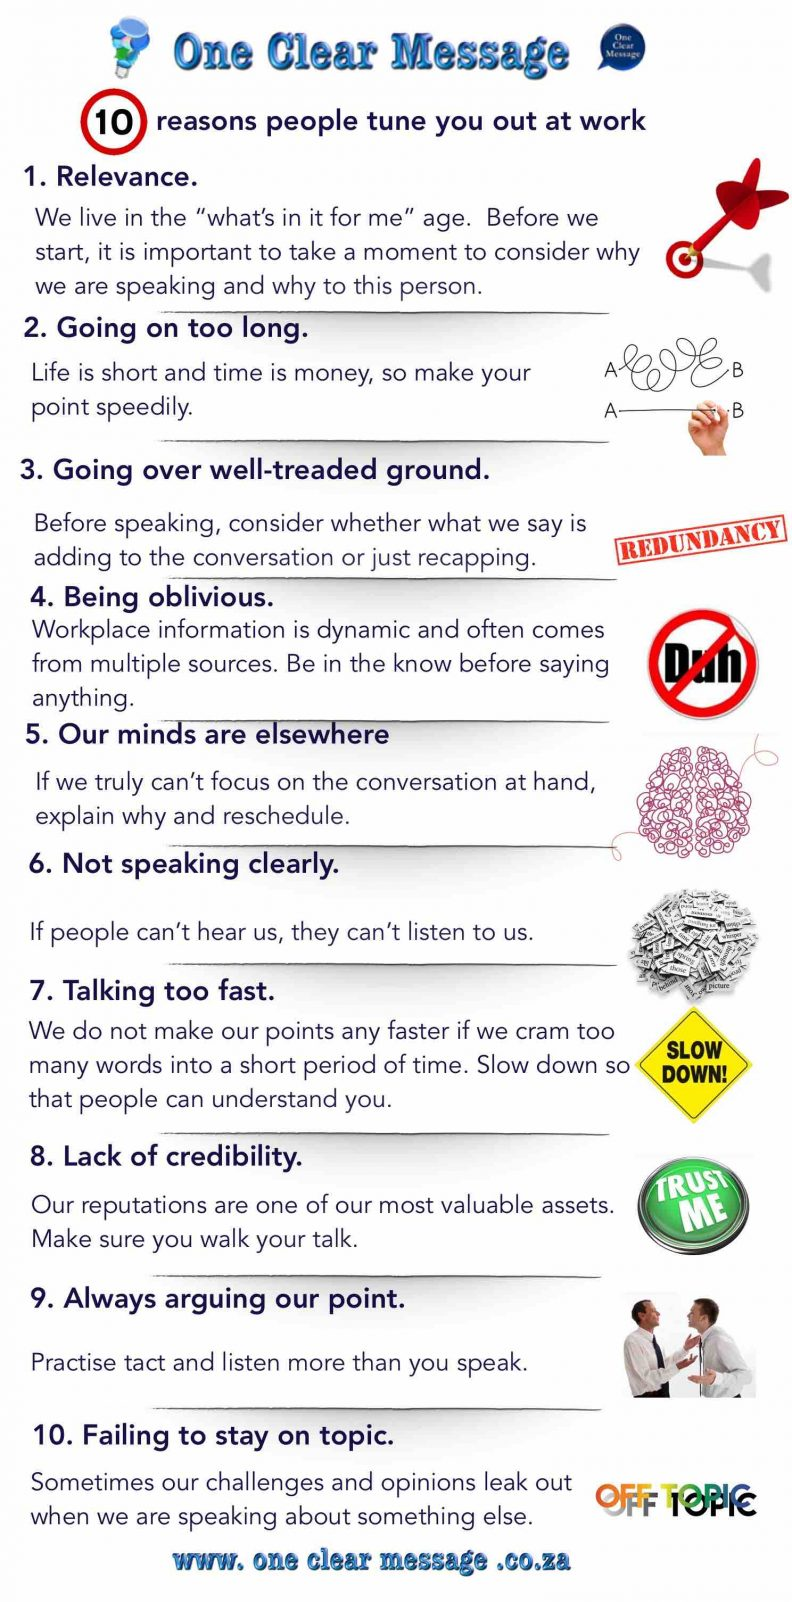 10 reasons people tune you out at work infographic